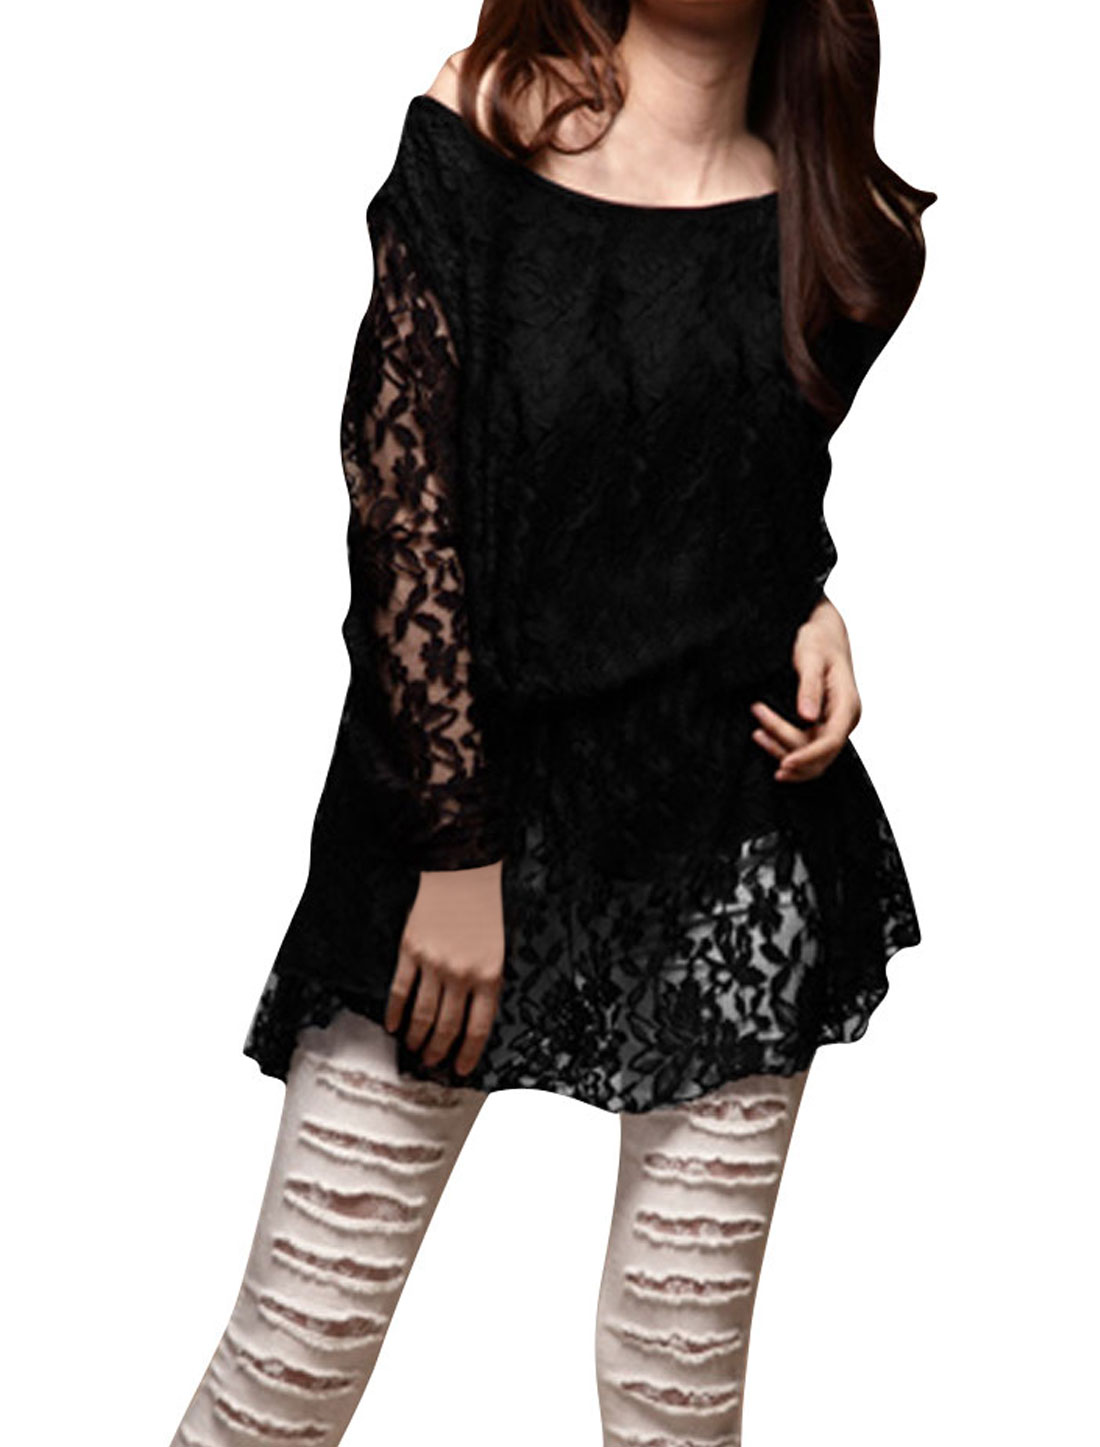 Ladies Black Flower Embroidery Stretchy Pullover Lace Tee Shirt XS